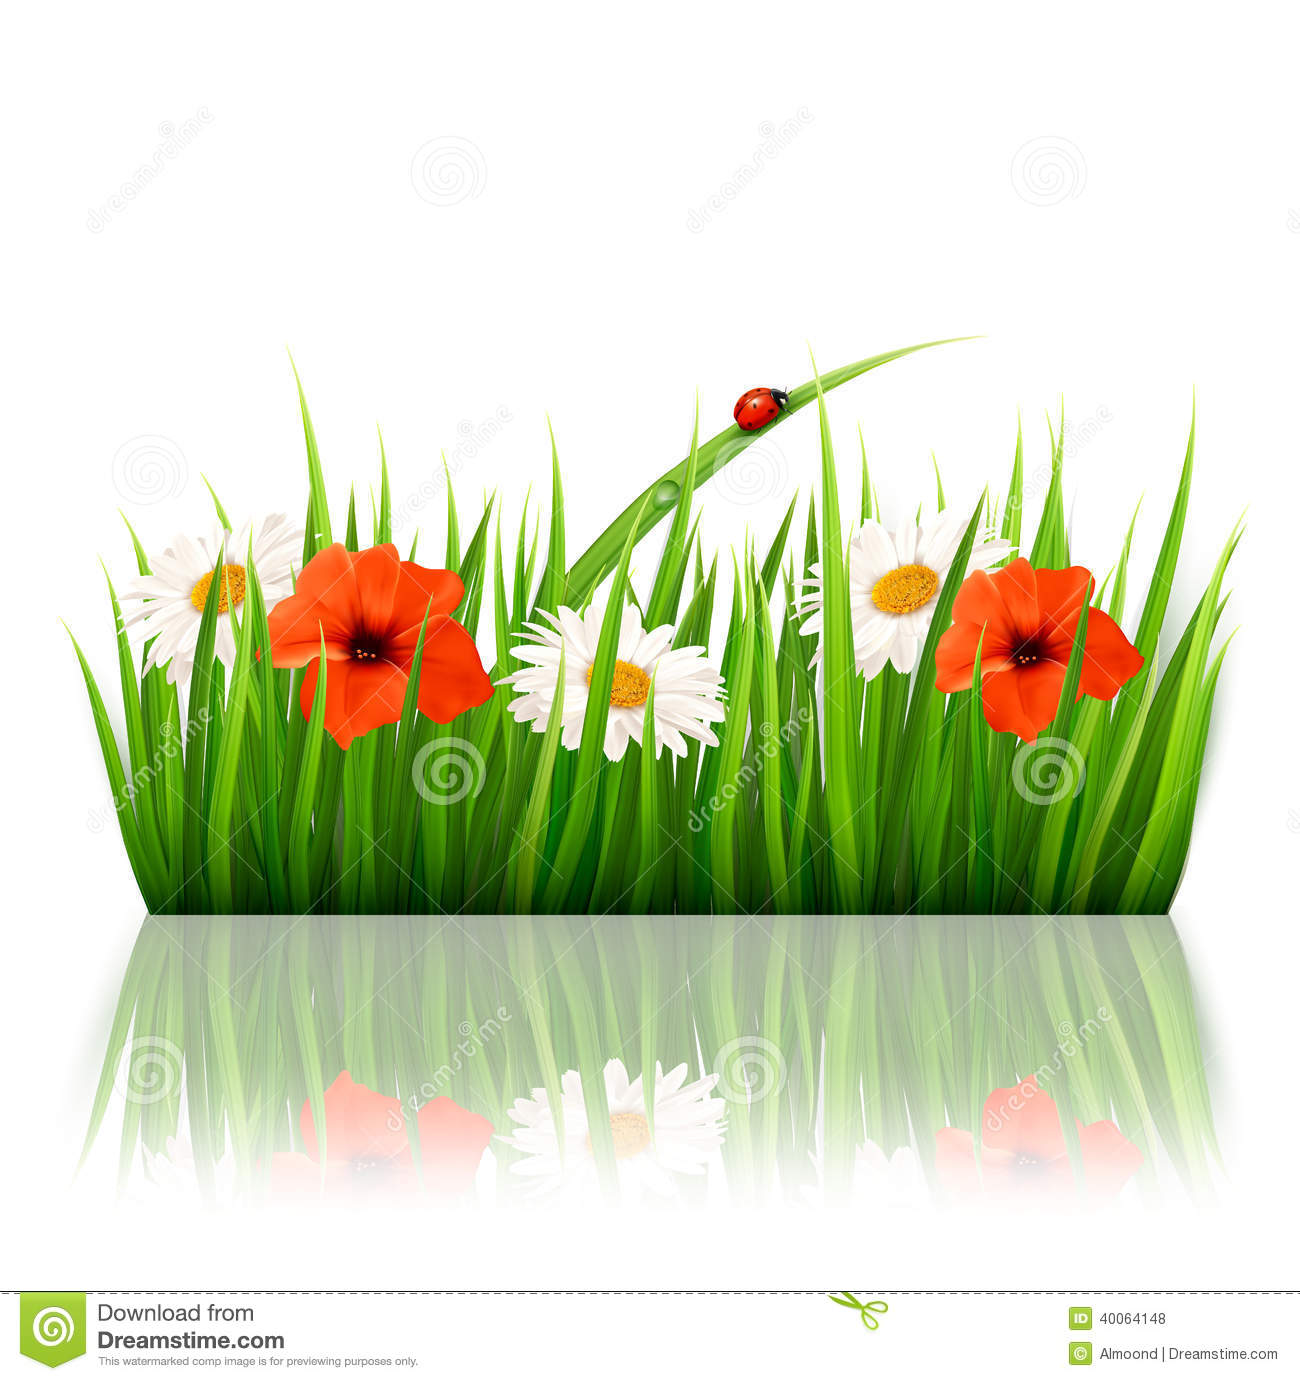 Spring background with flowers, grass and a ladybu